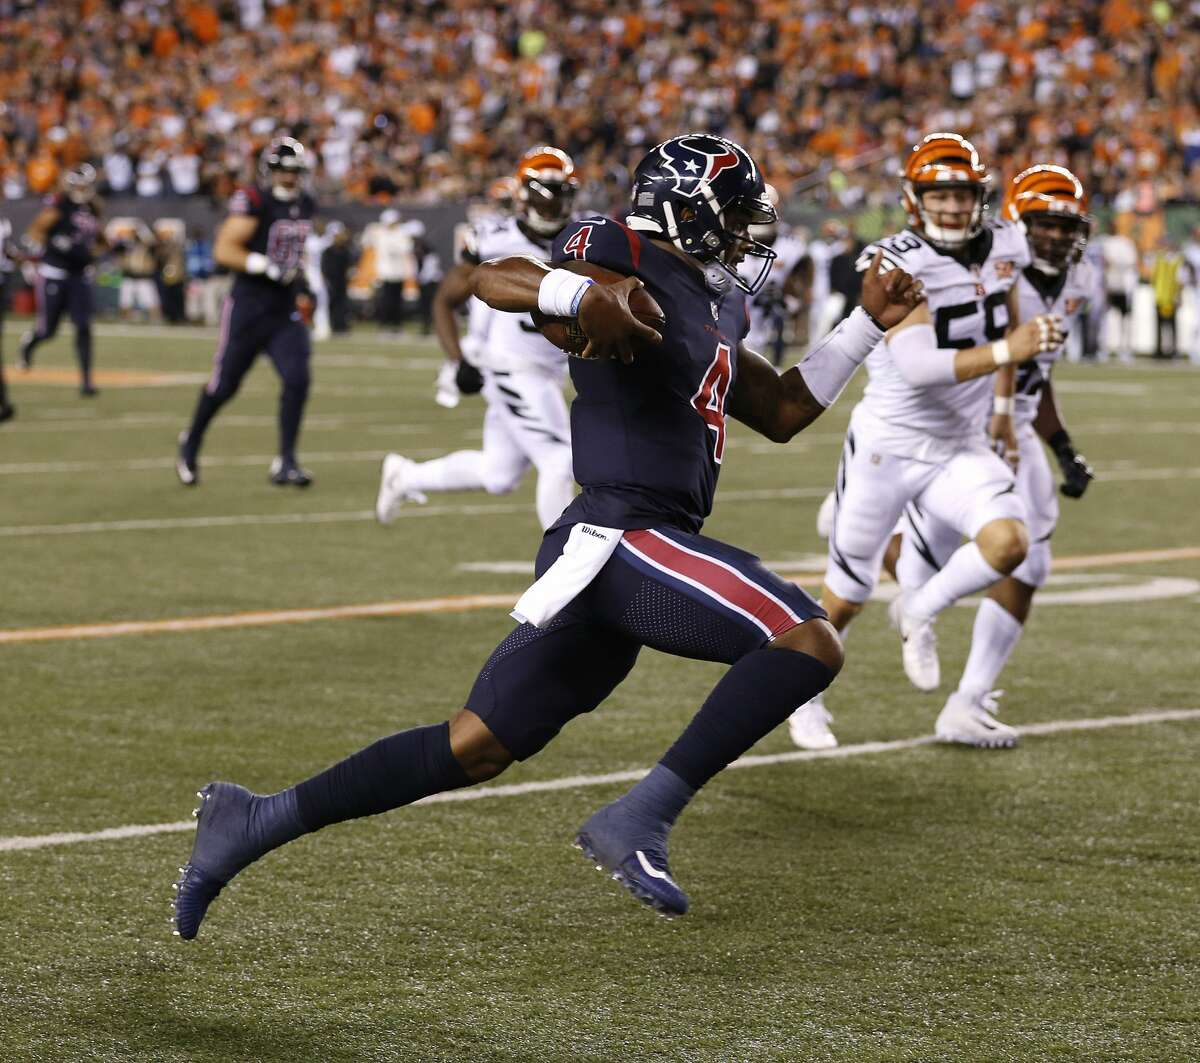 Deshaun Watson's 5 best plays during his rookie quarterback season with the Texans Sept. 9: vs. Cincinnati, Paul Brown Stadium Texans 13, Bengals 9 In the second game of the season and Watson's first start, the score was 3-3 in the second quarter. On third-and-15, Watson ran 49 yards for a touchdown, running between and around defenders on national television, giving the Texans a 10-3 lead.